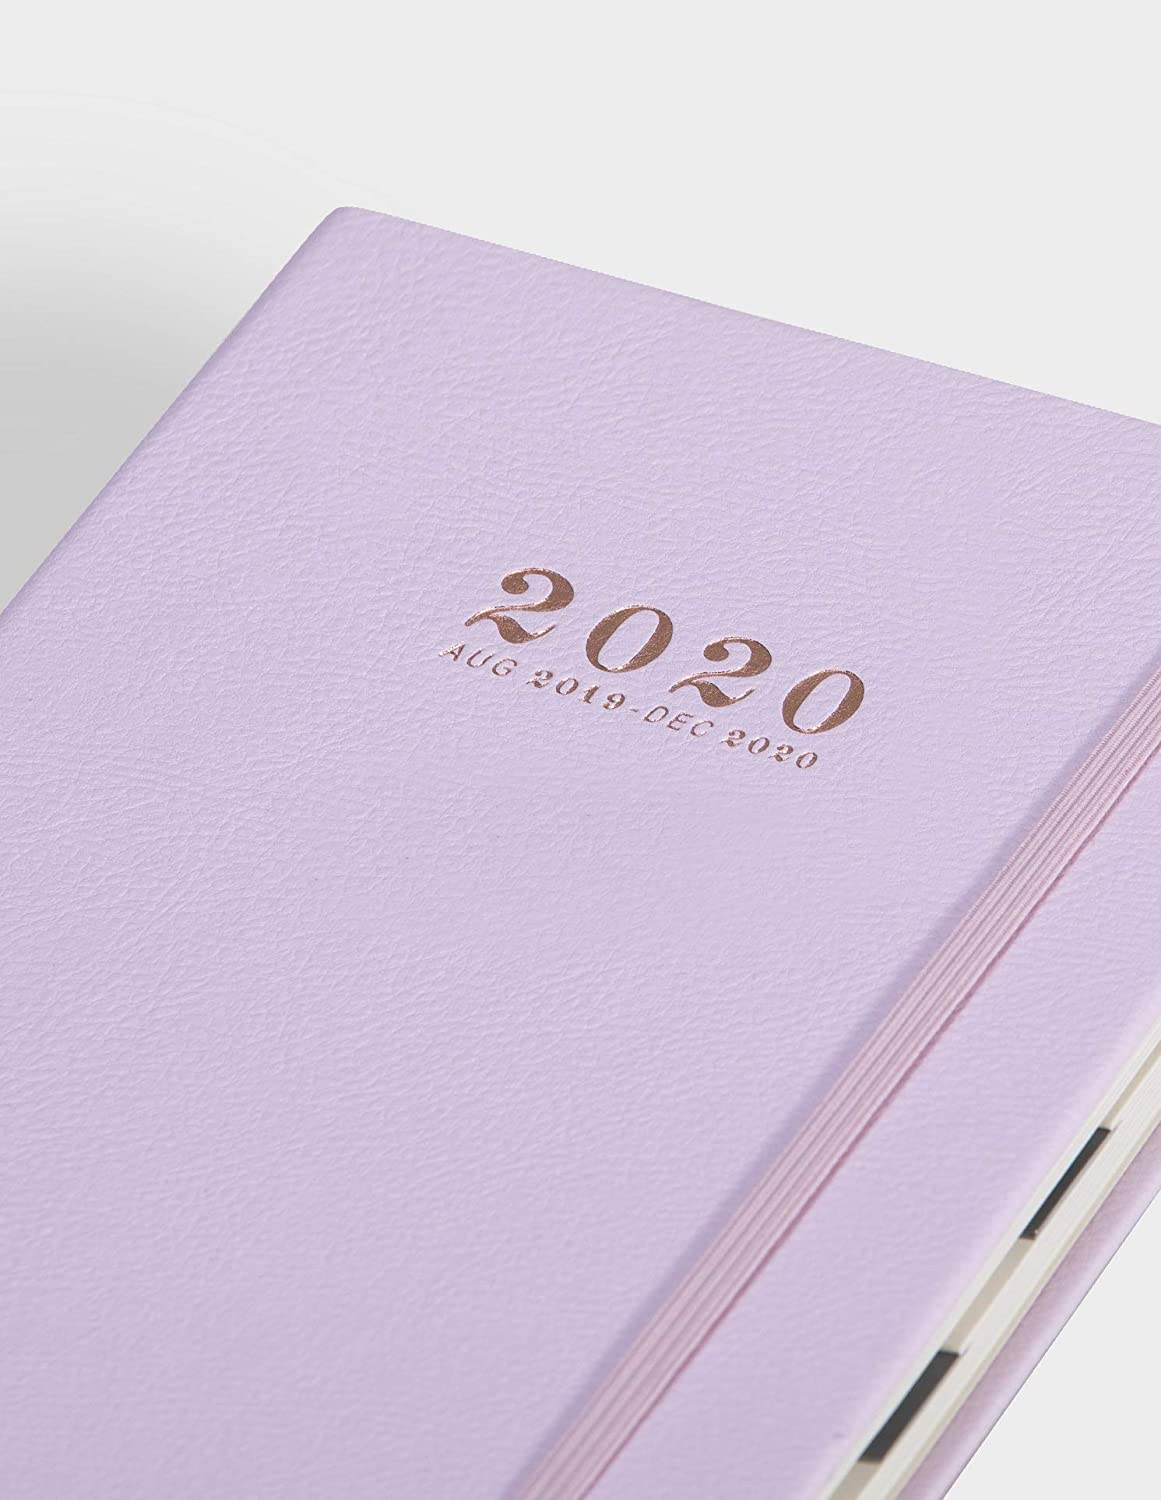 Minimalism Art, Academic Daily Planner, 17-Month Agenda(August 2019-December 2020), Monthly and Weekly Dated Calendar Organizer Book, A5 Thicker ...